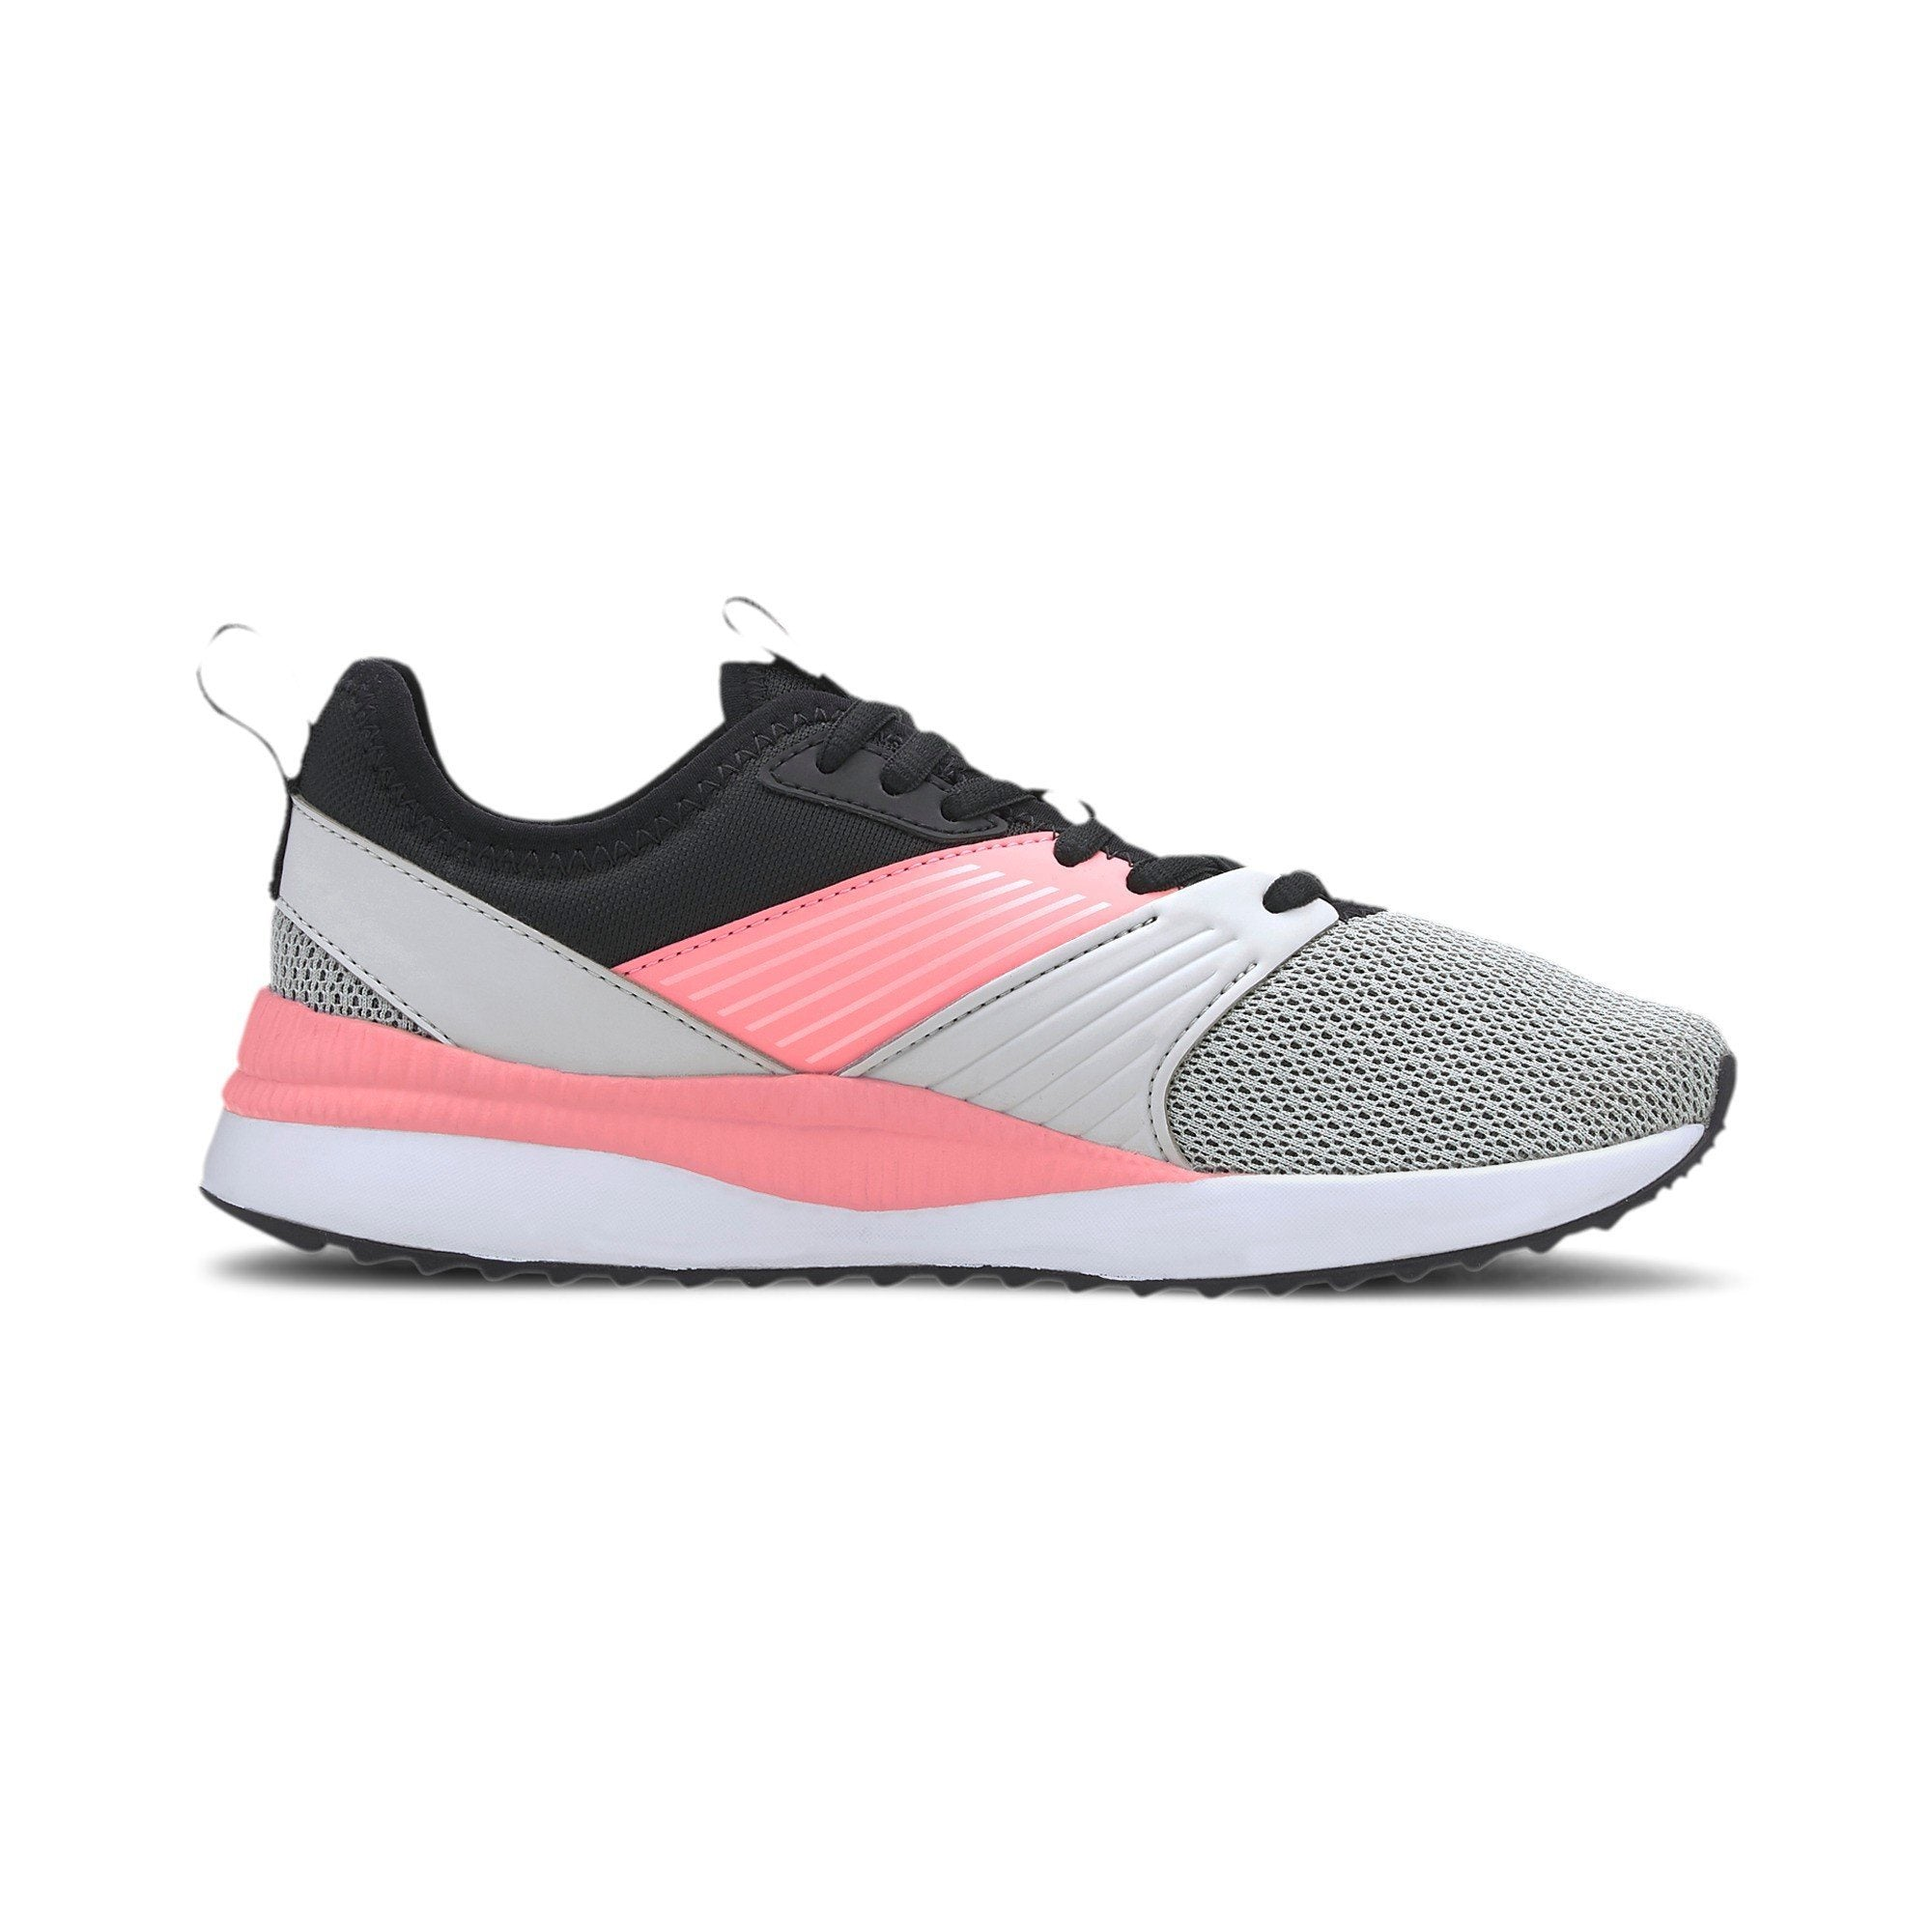 Puma Kids Pacer Next FFWD Jr - Puma Black/Salmon Rose SP-Footwear-Kids Puma